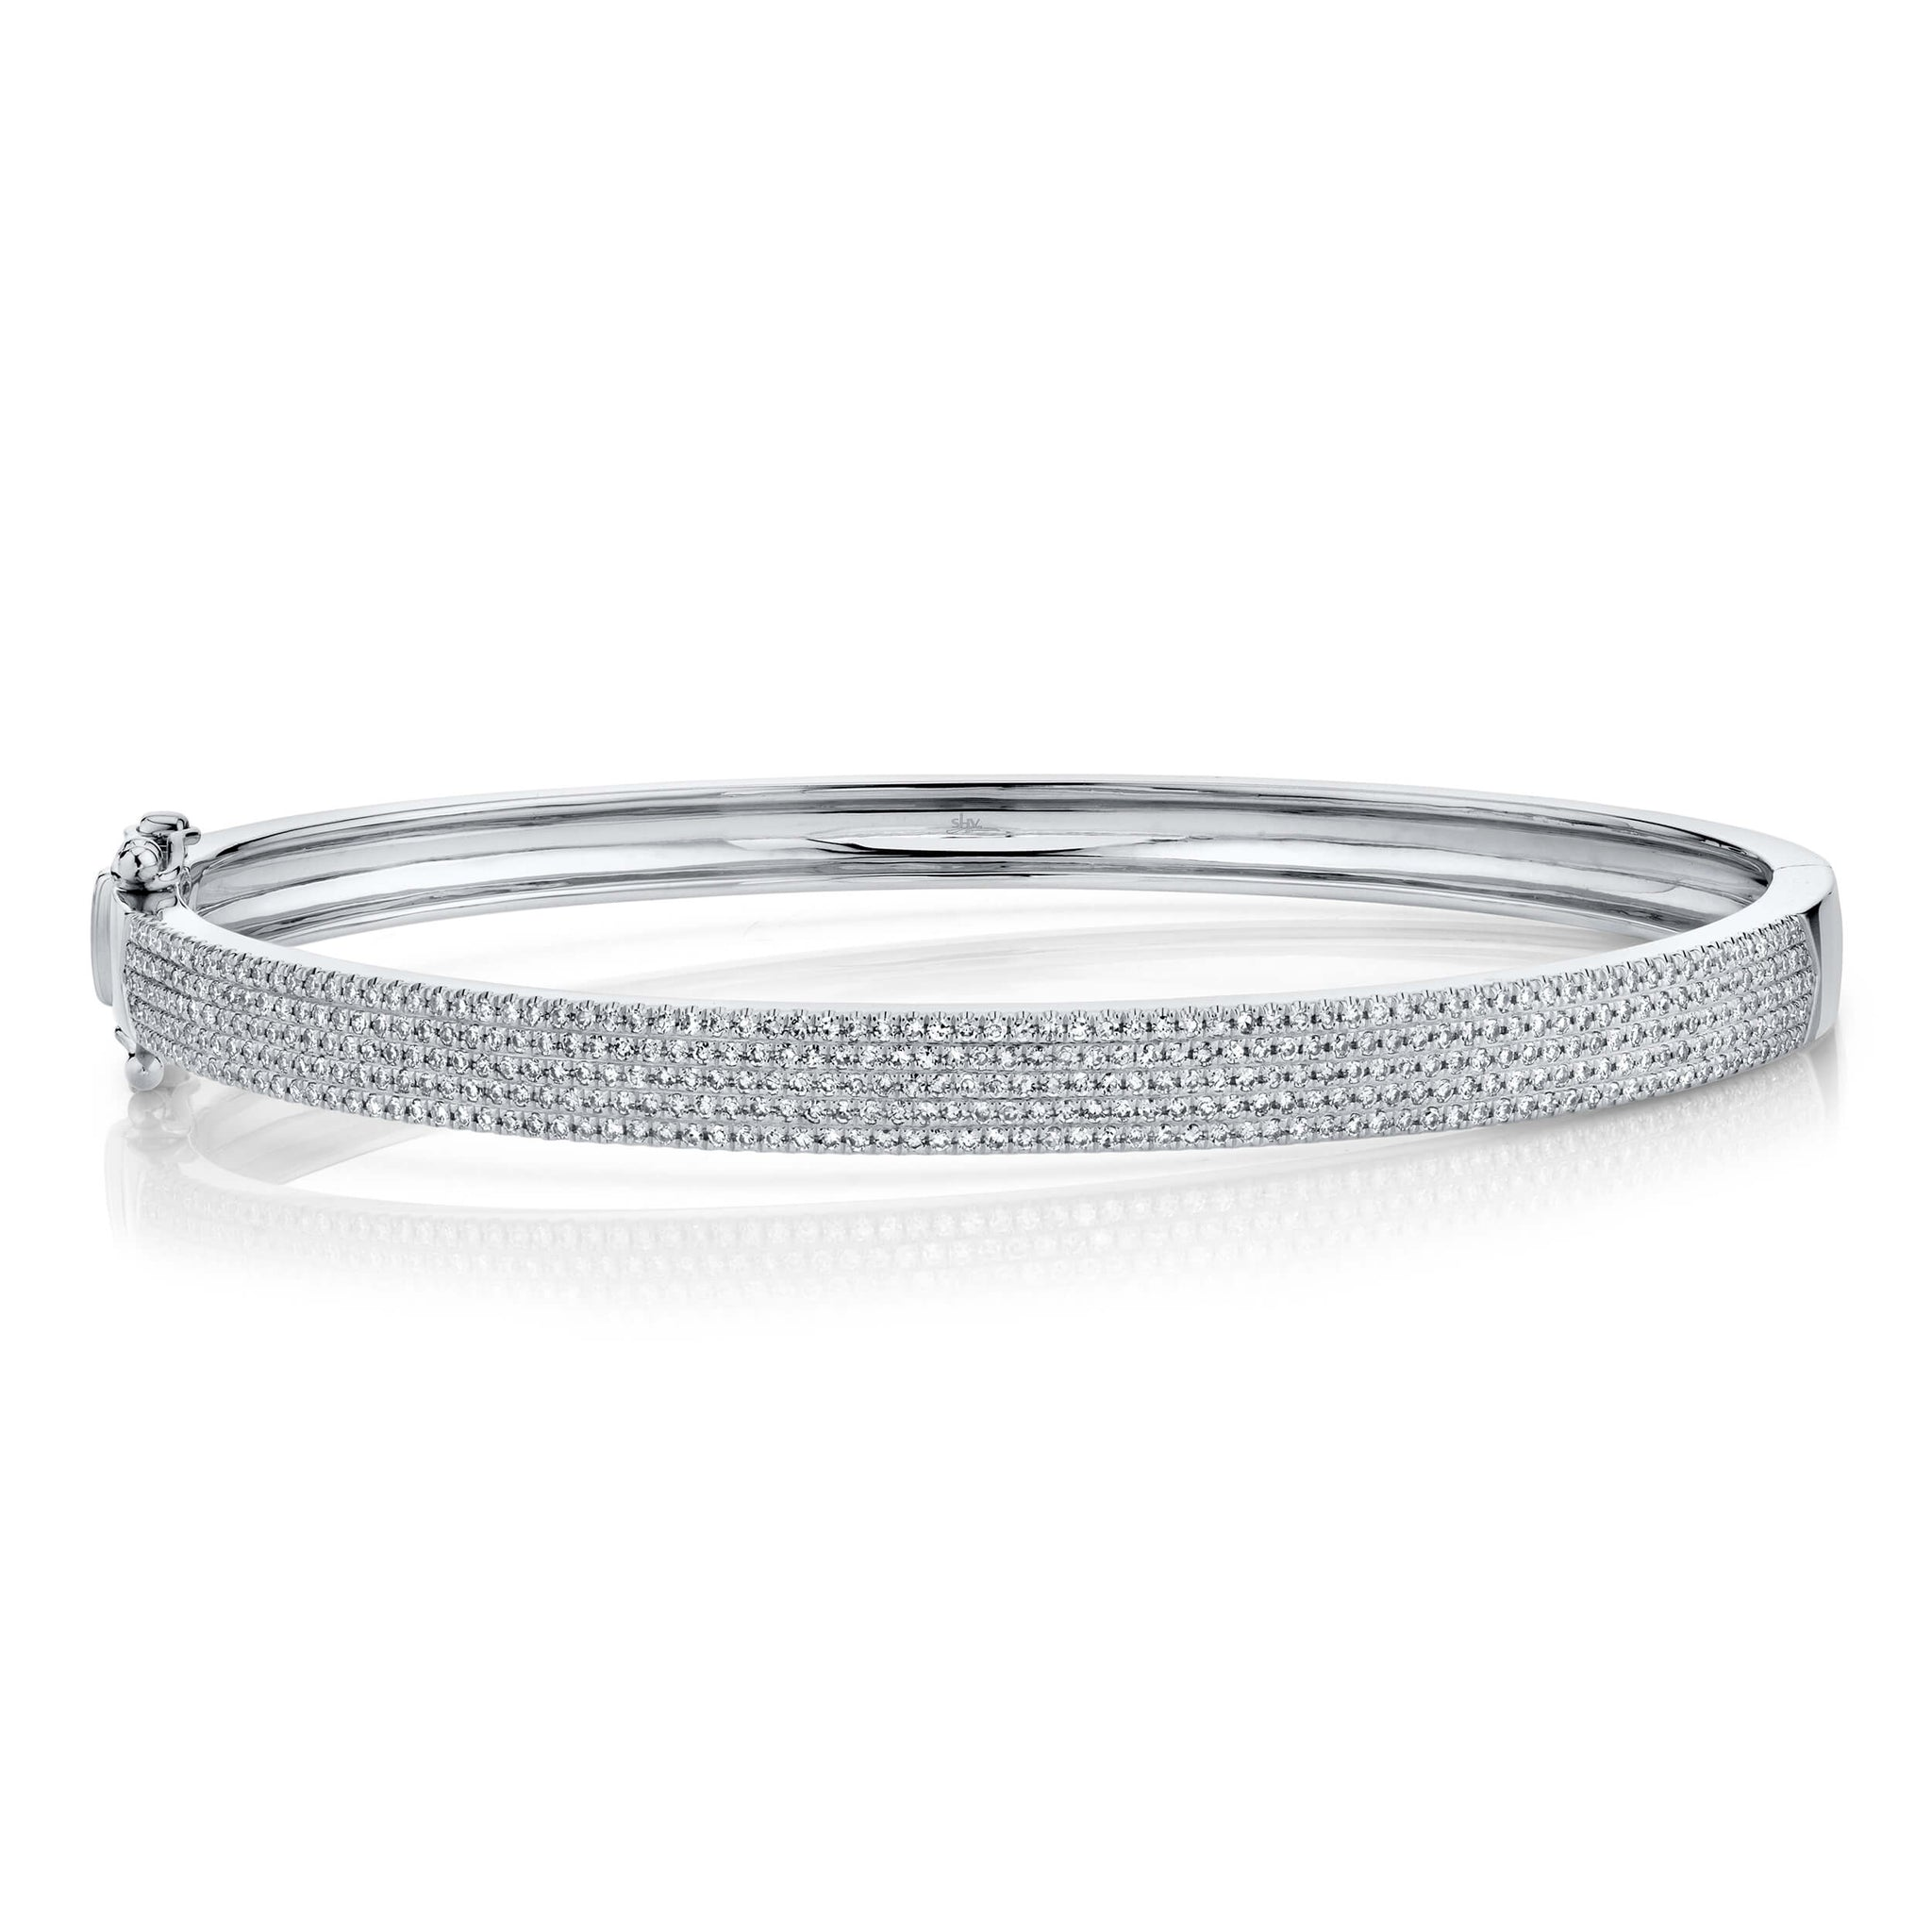 Five Row Pave Bangle